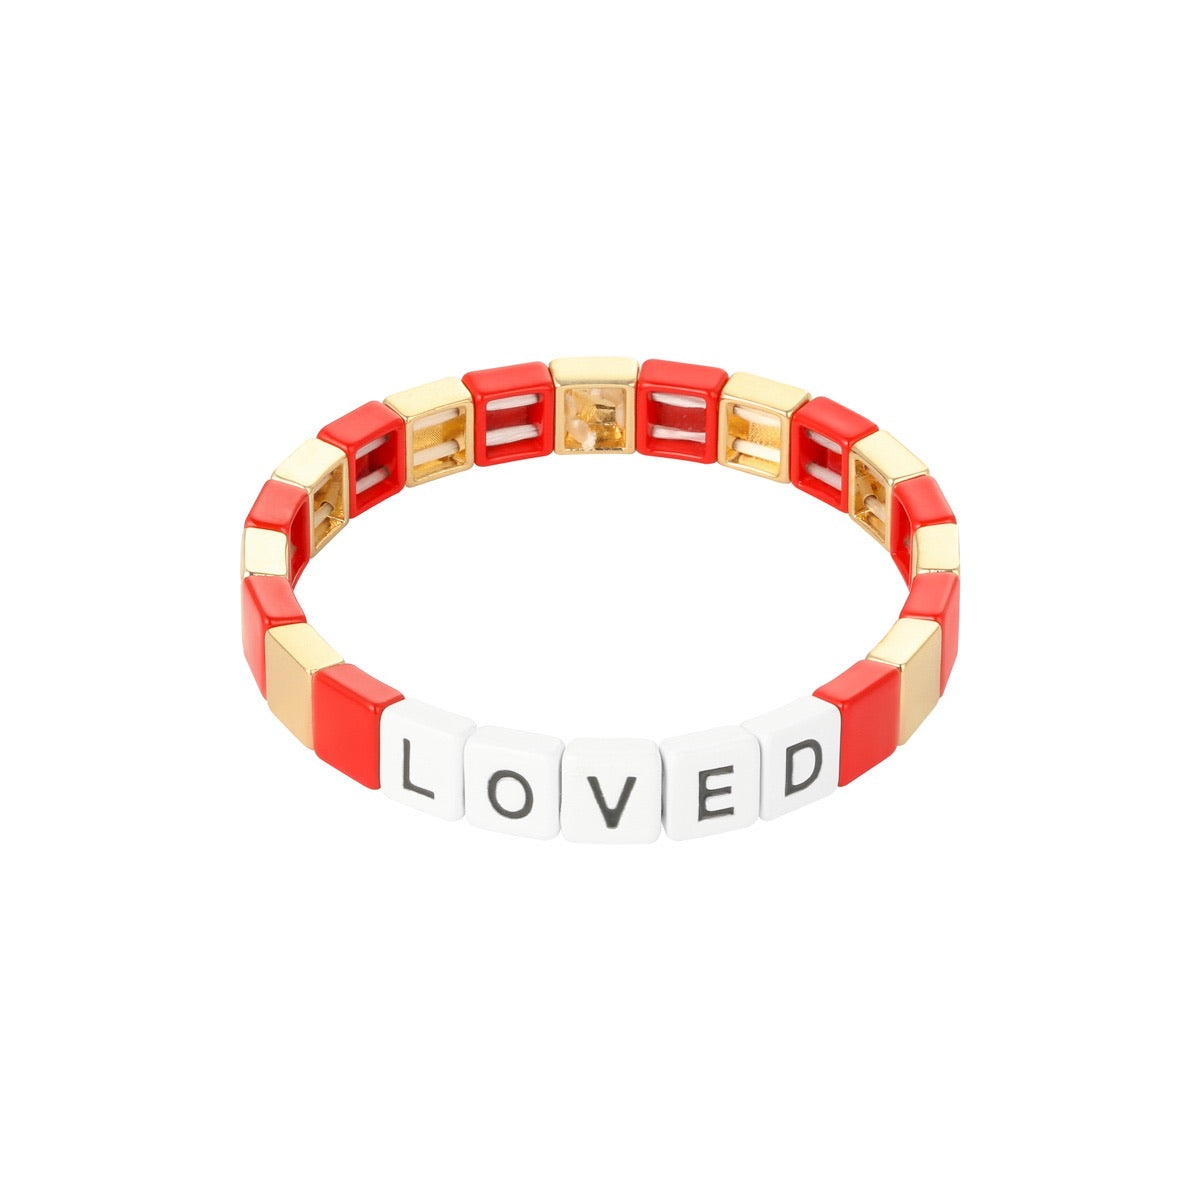 LOVED Bracelet Red and Gold